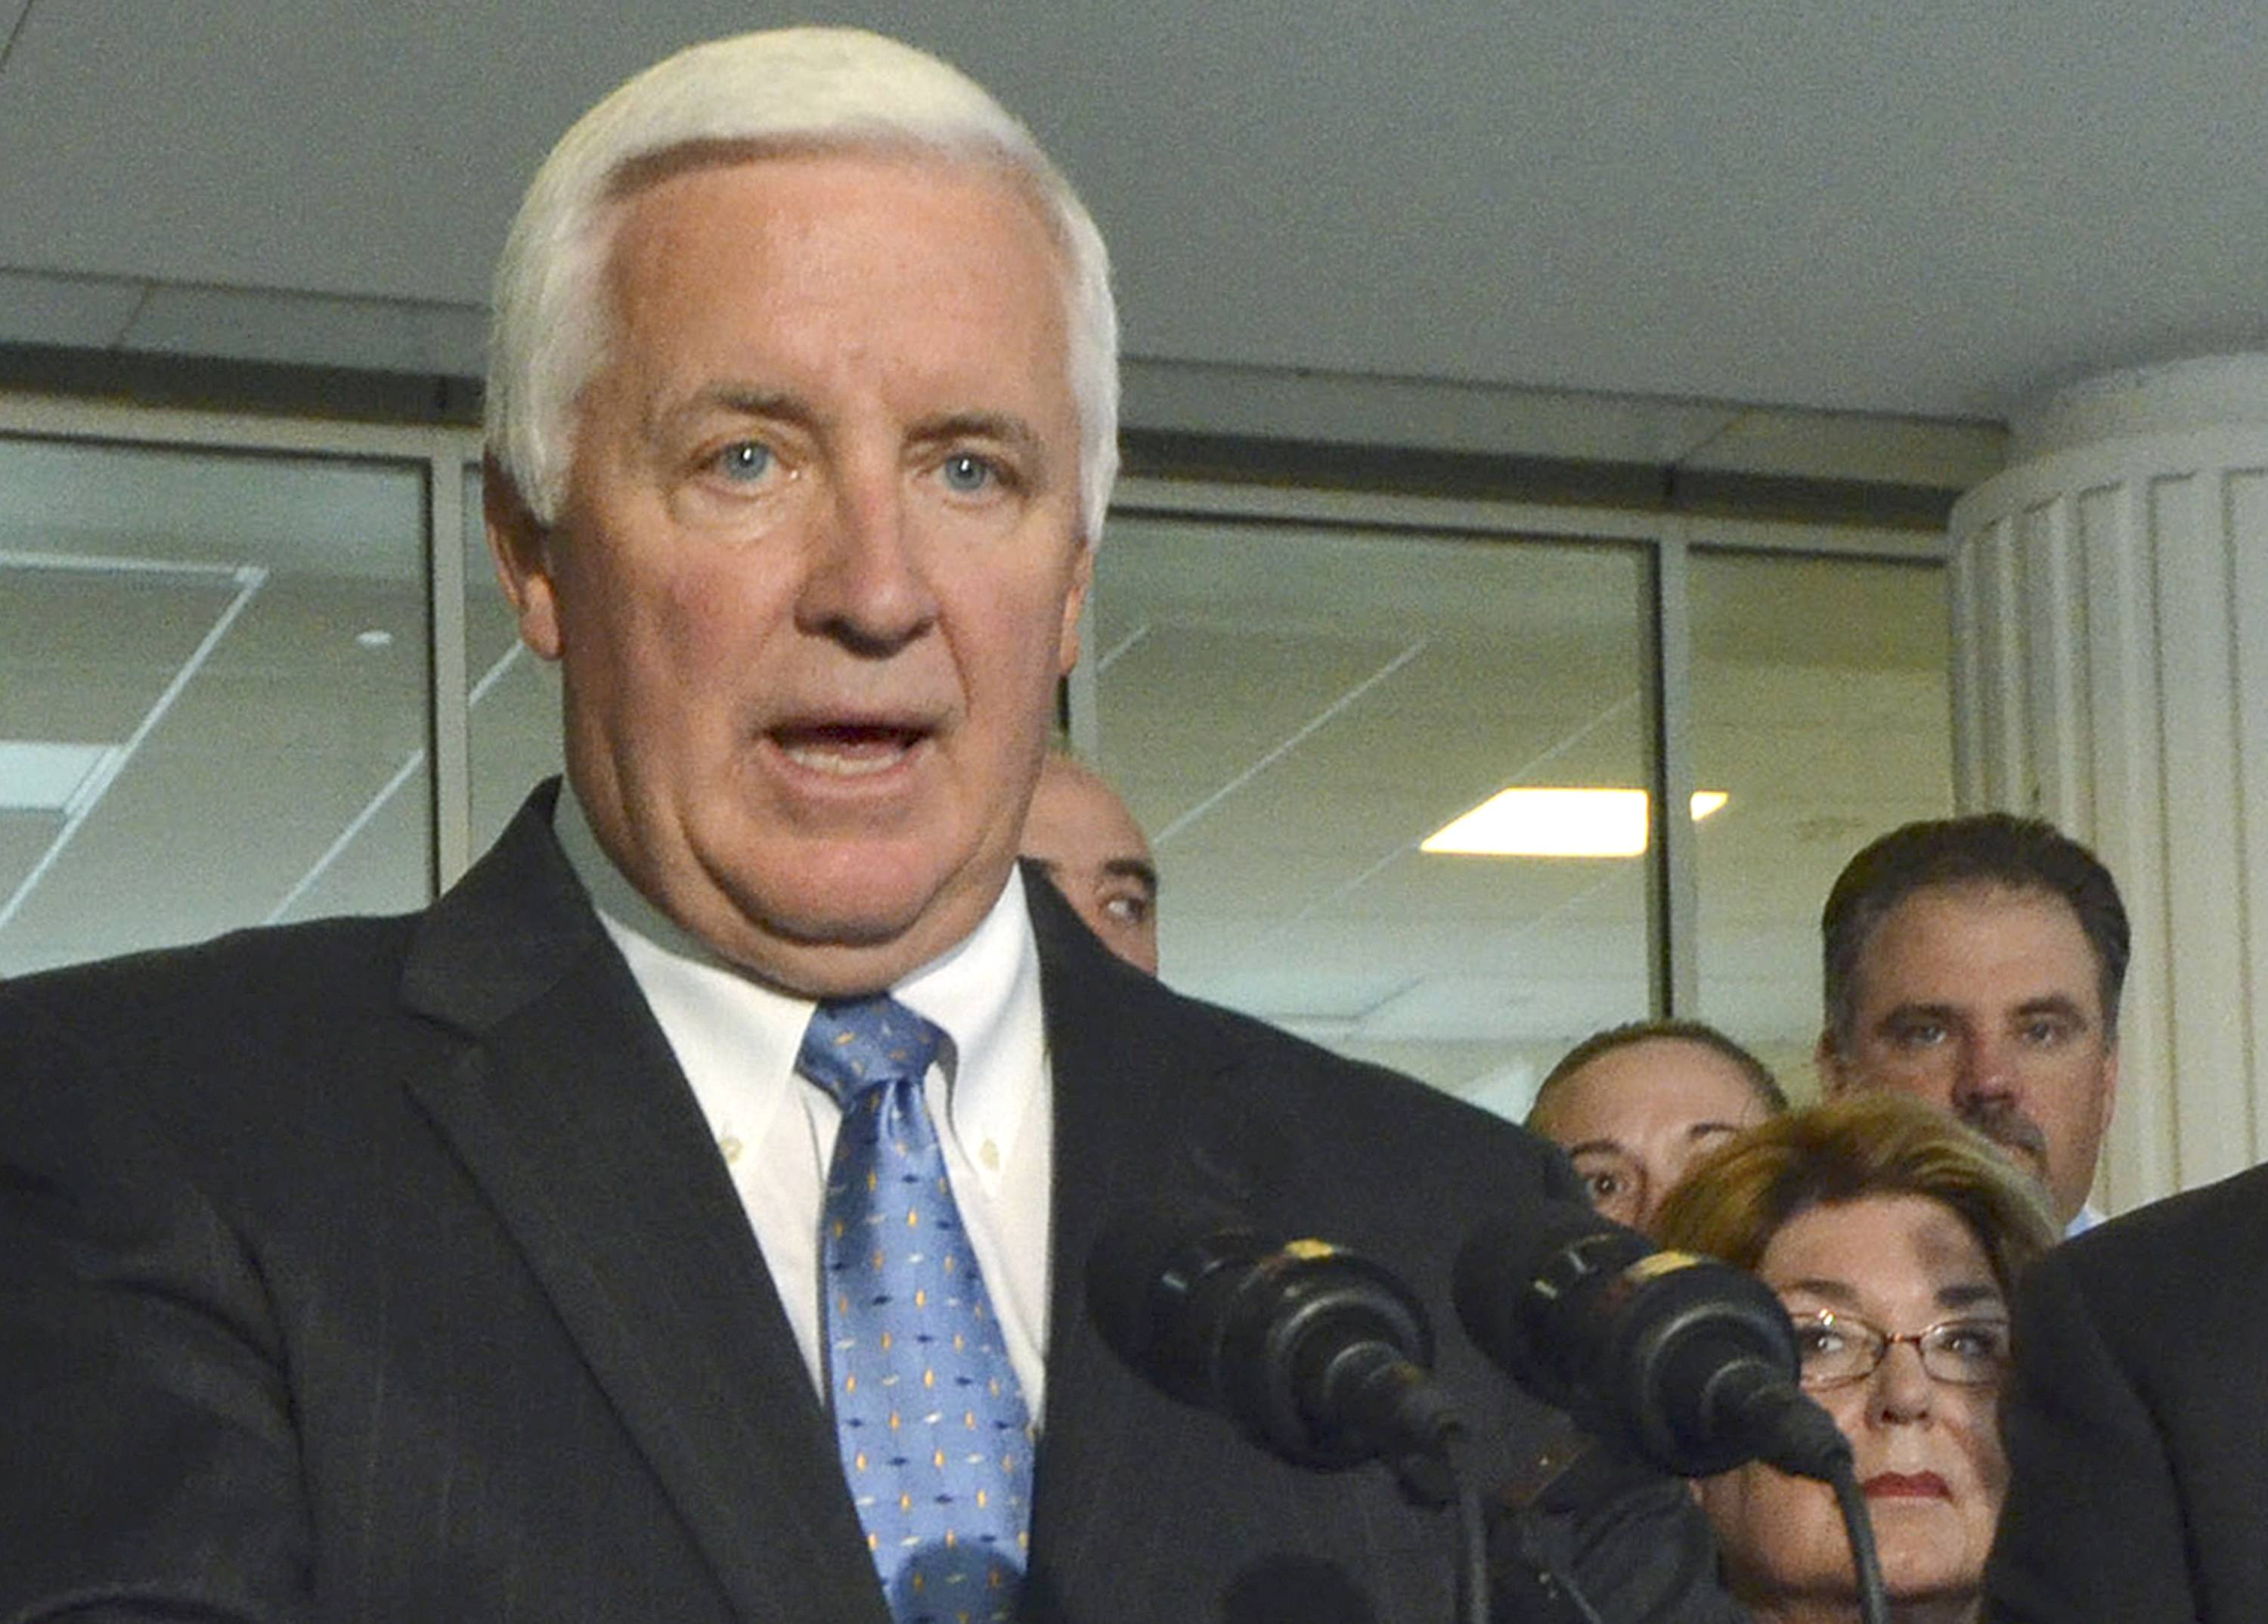 This Sept. 15, 2013, file photo shows Pennsylvania Gov. Tom Corbett speaking during a news conference in Harrisburg, Pa. Corbett publicly opposes the legalization of same-sex marriage. One after another and in sometimes evocative language, judges appointed by Republican and Democratic presidents are declaring it's too late to turn back on the topic of same-sex marriage. The latest ruling, in Pennsylvania, was followed quickly by word from Republican Corbett that he would not appeal and instead let the decision take effect. Corbett is facing a tough campaign for re-election this year.